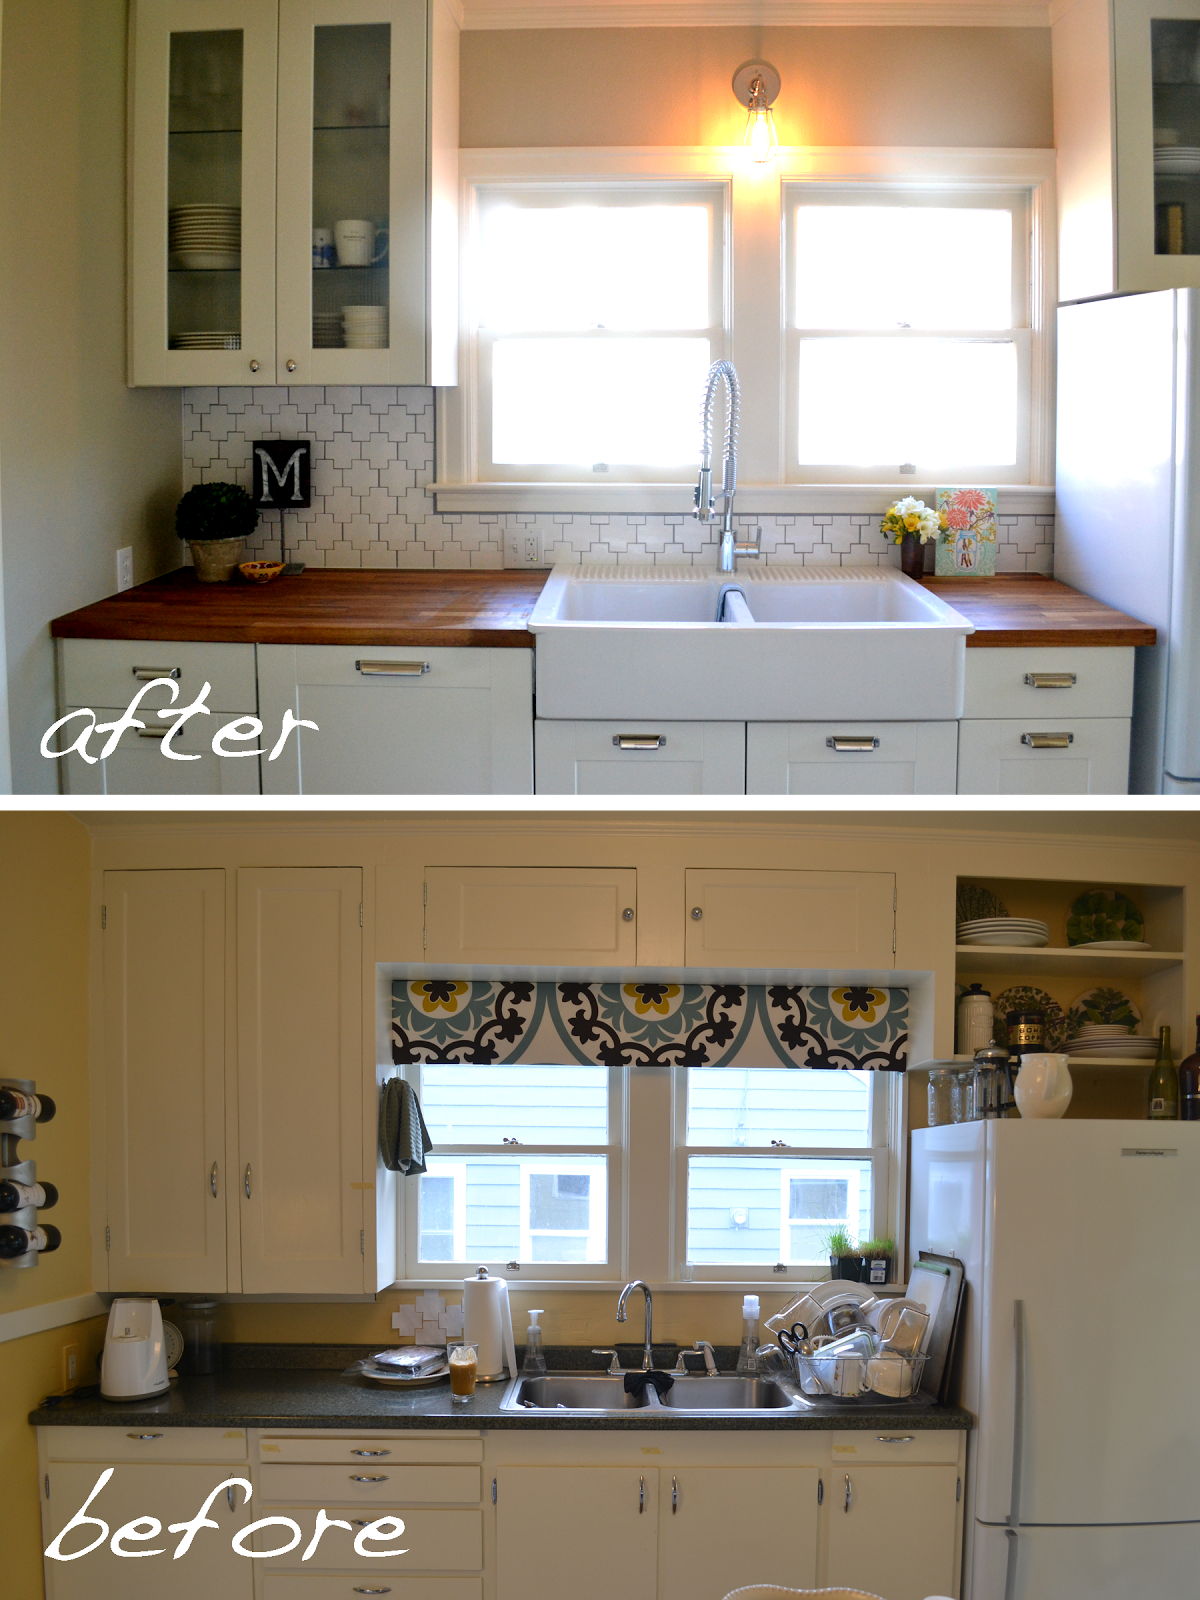 A Home In The Making: {renovate} Kitchen REVEAL